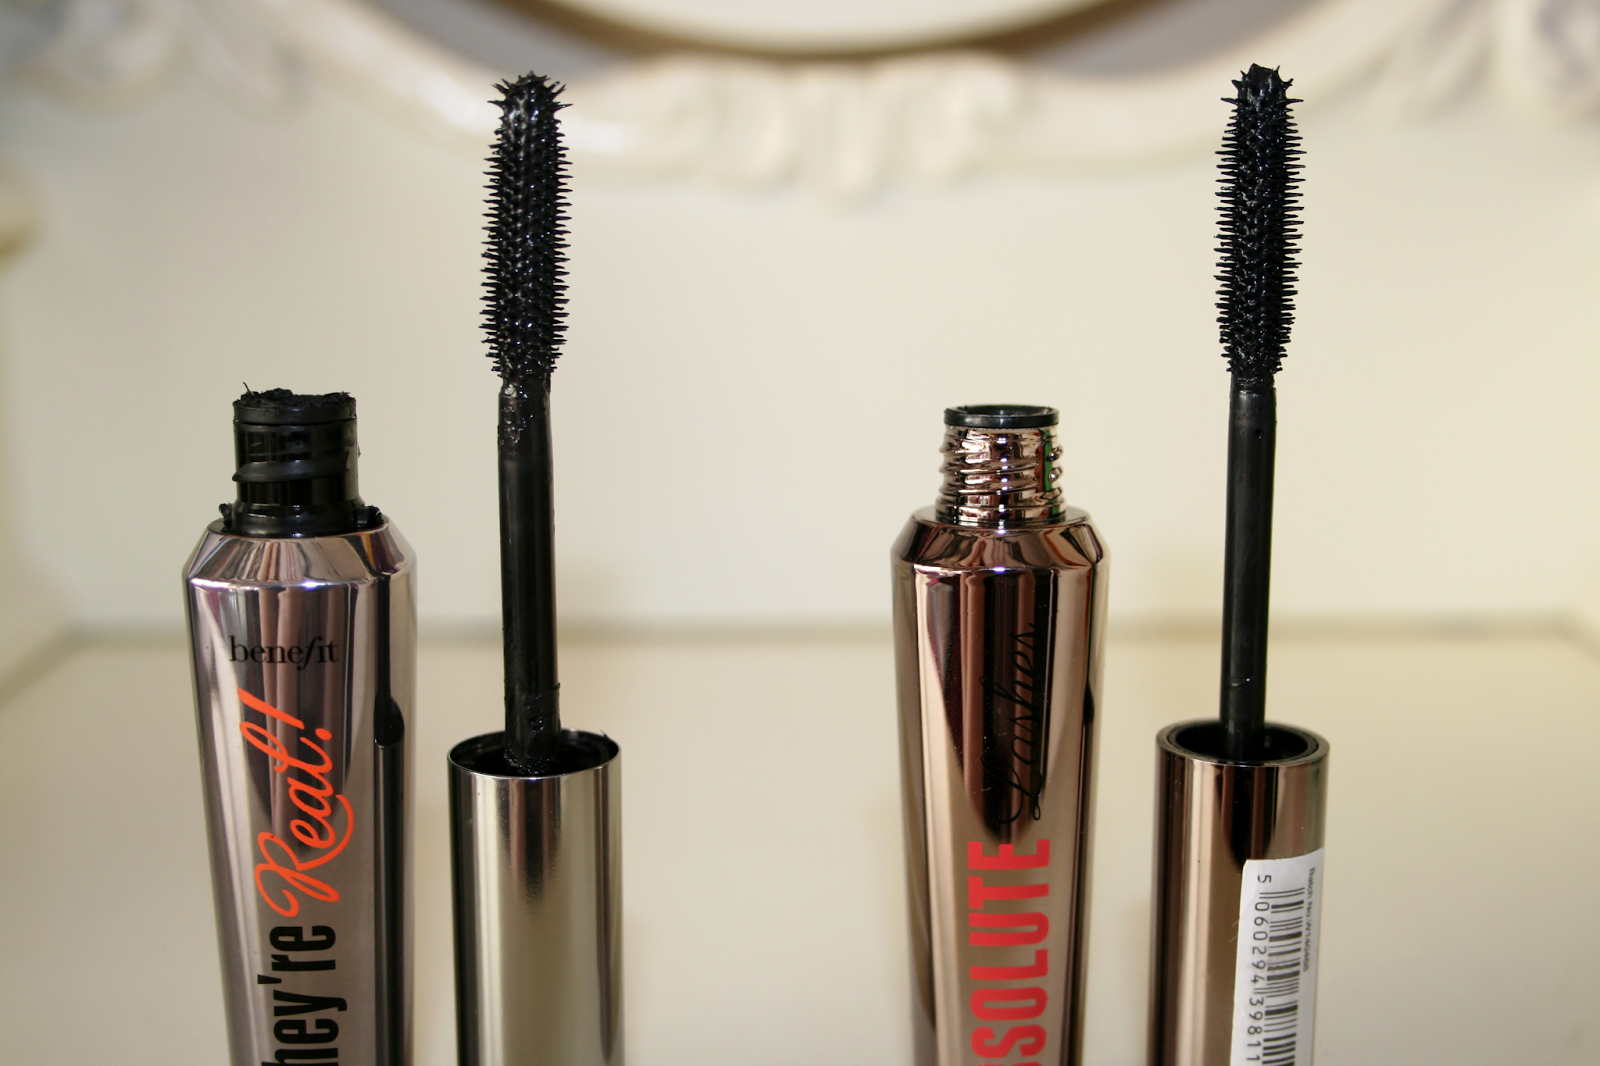 W7 Mascara Benefit They're Real Dupe